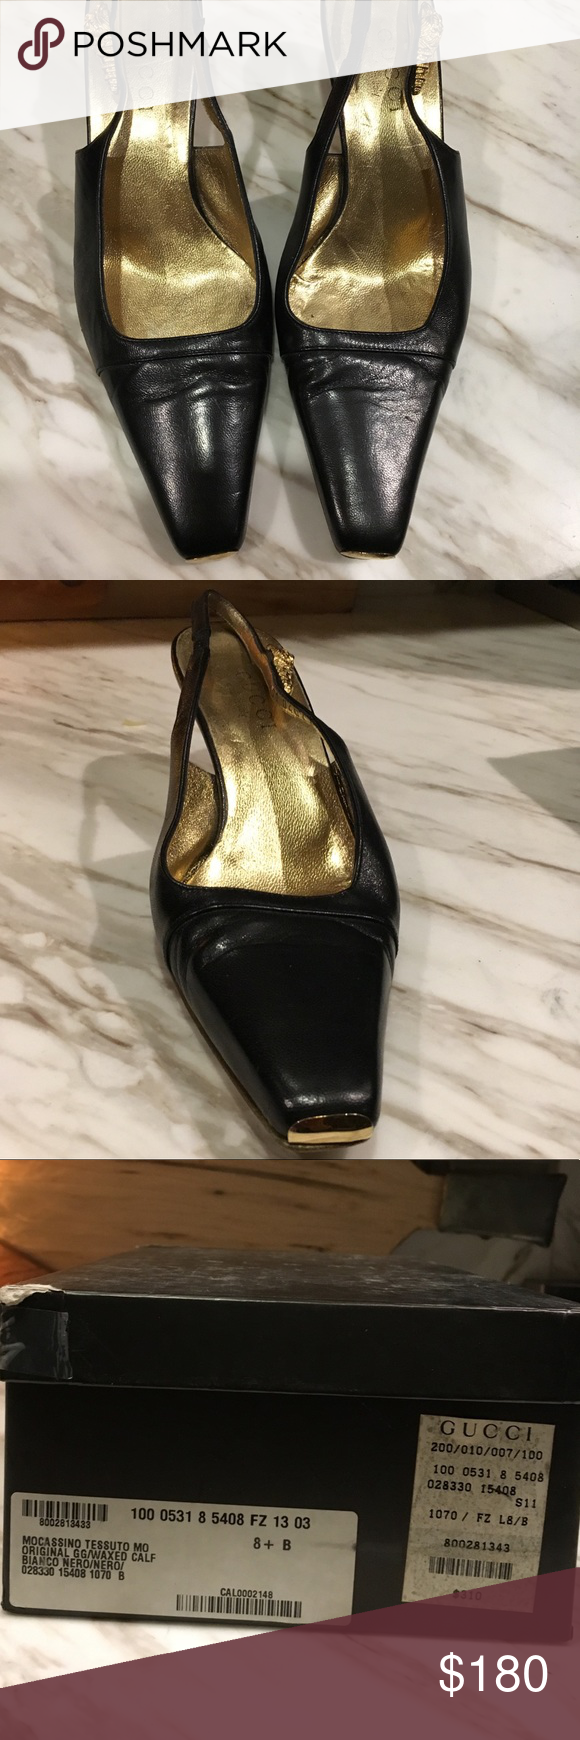 911af421b Gucci Black Leather Square Pointed Mocassino heels -Gucci -Gently Worn,  great condition, WITH box -Black Genuine Leather with 2 inch heel Mocassino  Shoes ...